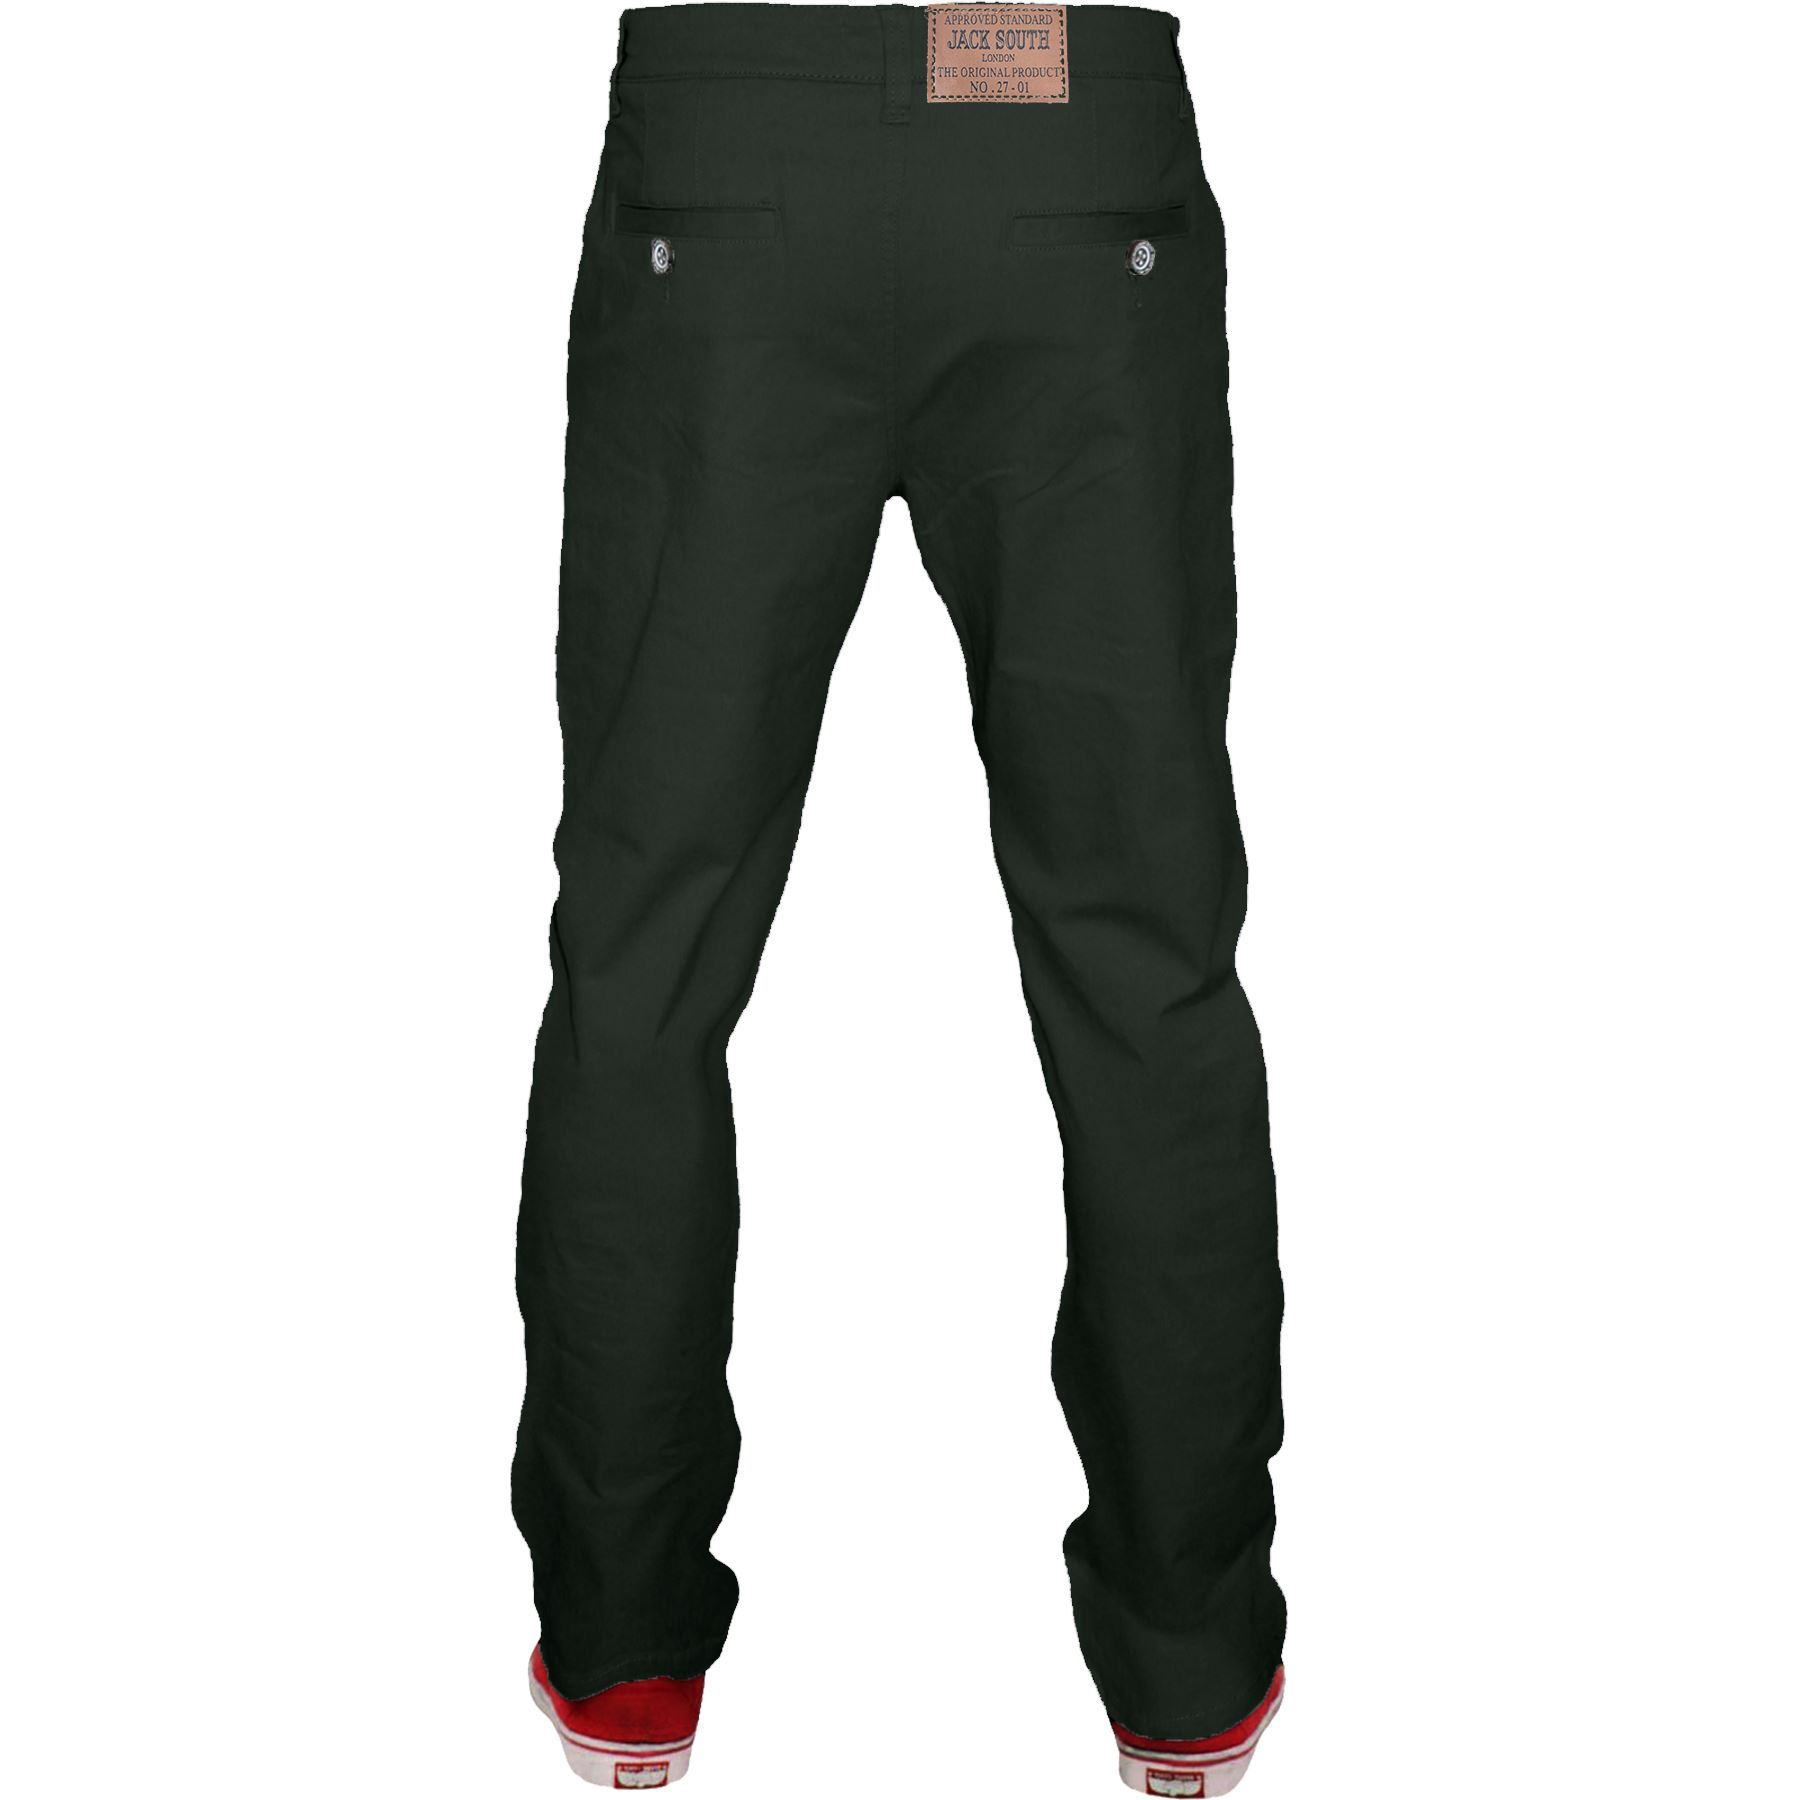 Mens-Chino-Classic-Regular-Fit-Trouser-Casual-Stretch-Spandex-Pants-Size-32-40 thumbnail 7